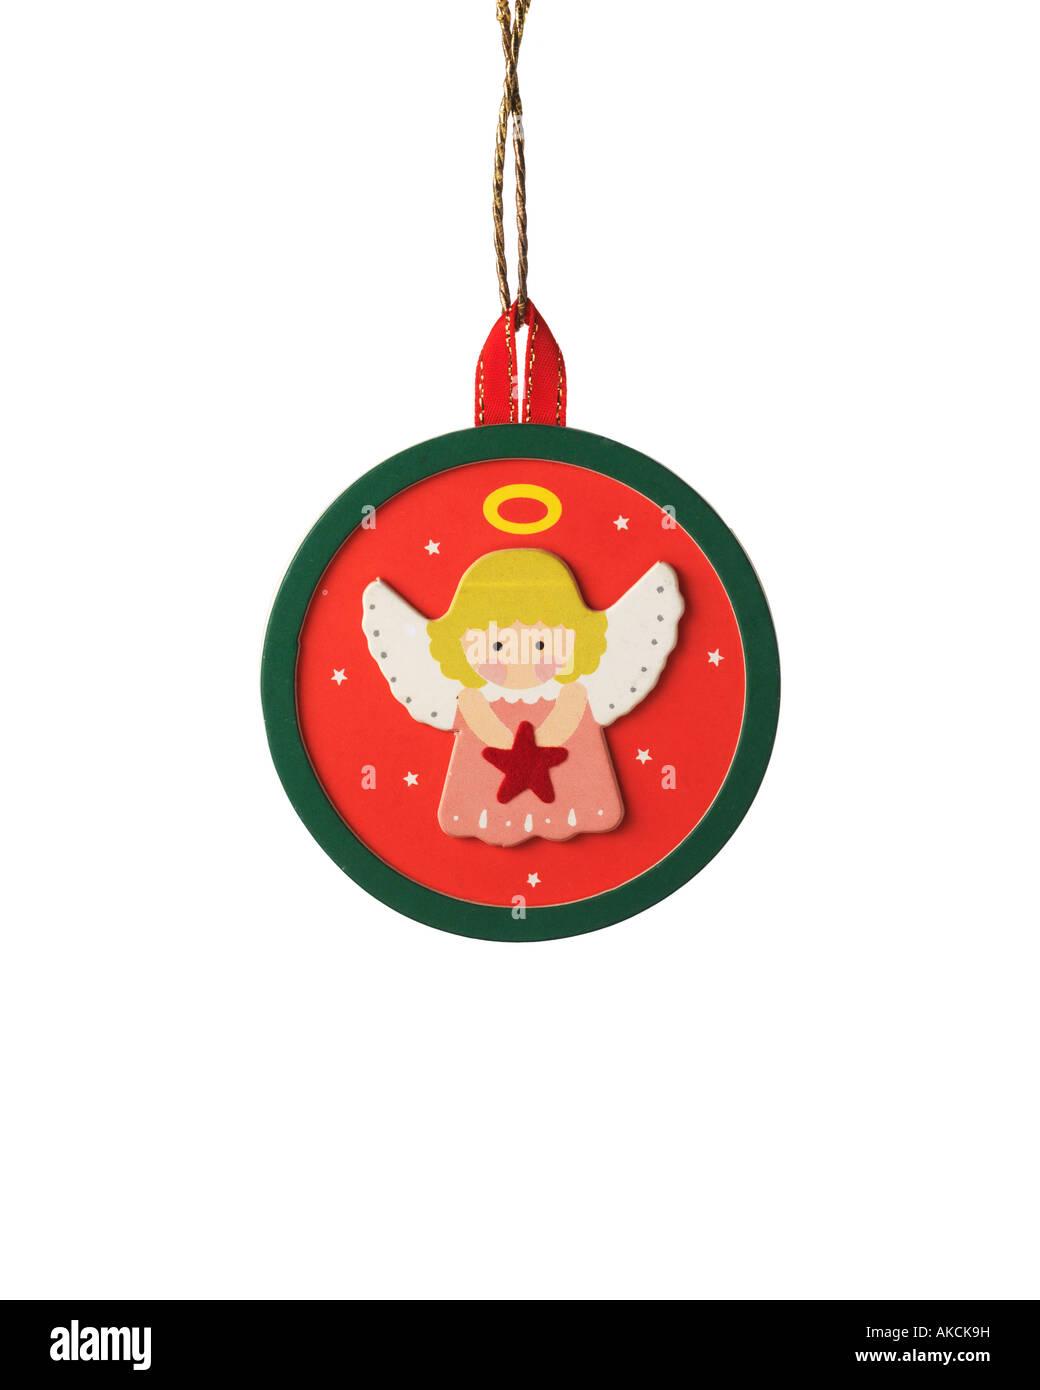 Vintage Christmas ornament decoration of handmade angel with halo scene hanging on hook - Stock Image